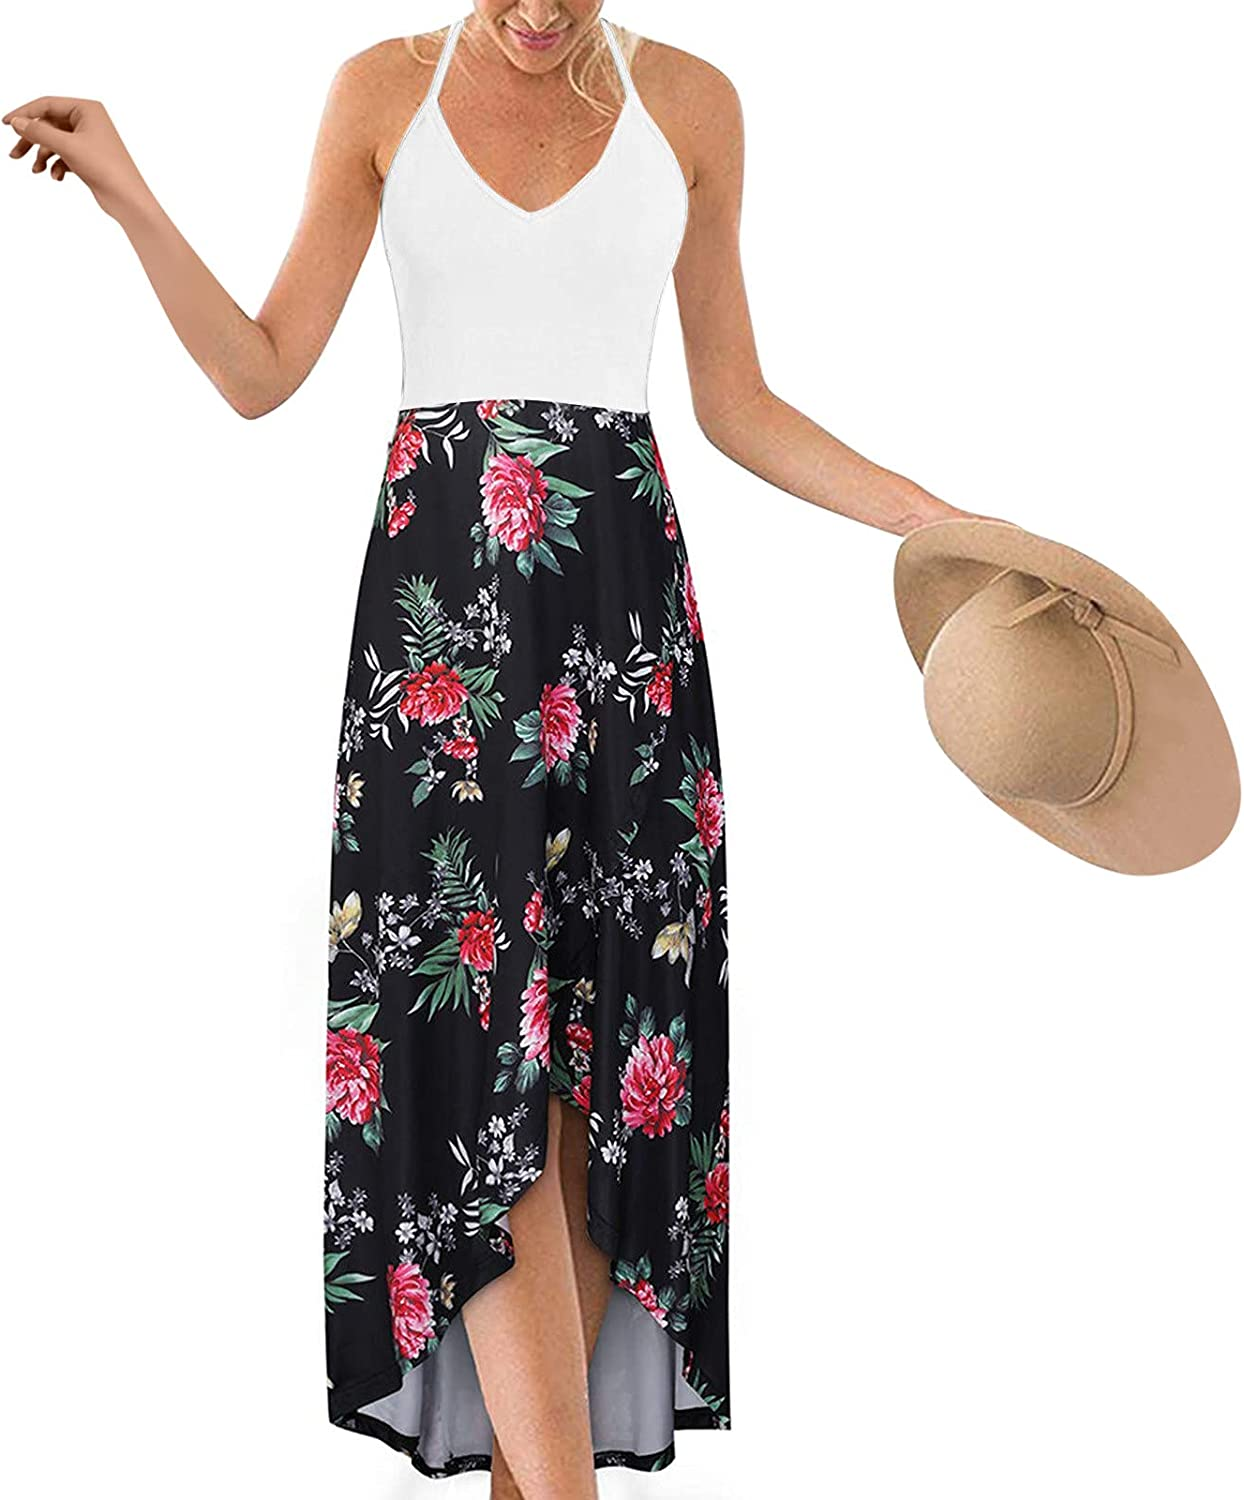 ORT Dresses for Women, Women's Summer Strappy V Neck Floral Printed Casual Maxi Dresses Sleeveless Cami Dress Beach Sundress